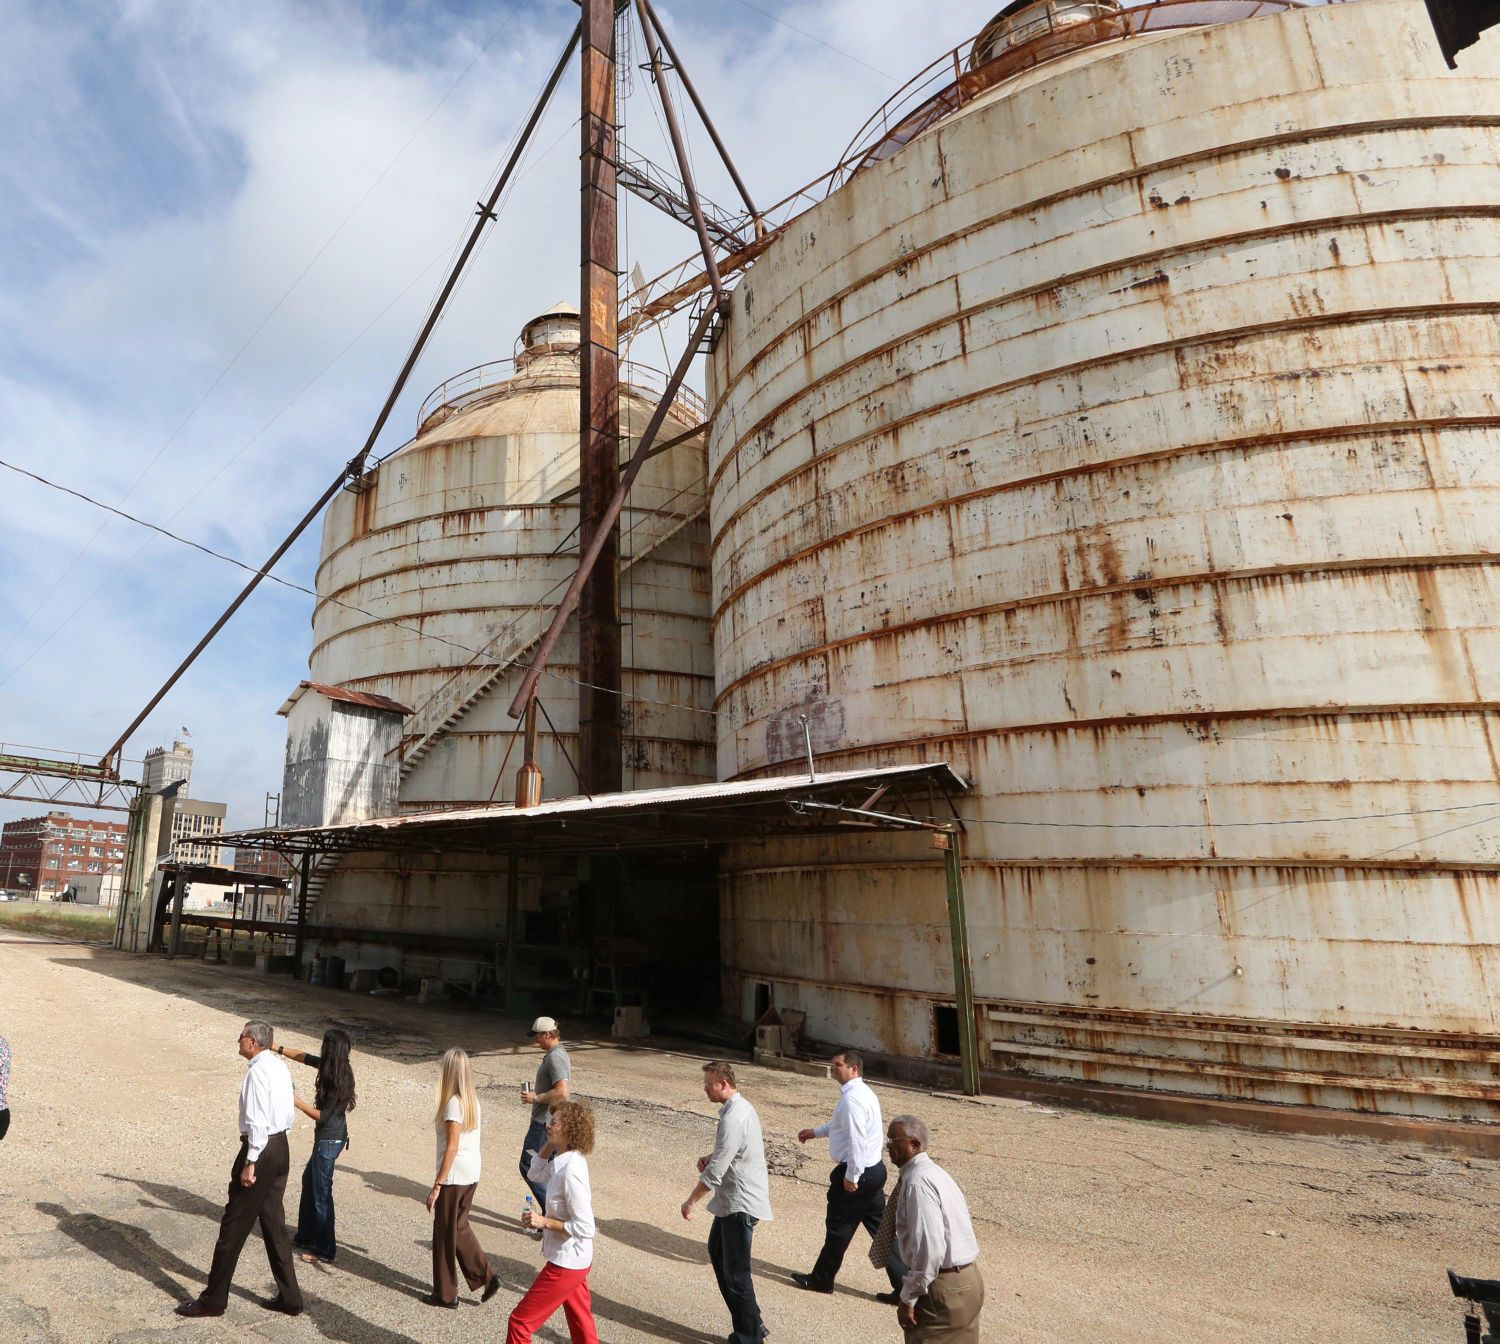 Board hgtv stars don t need to paint silos wacotrib com business